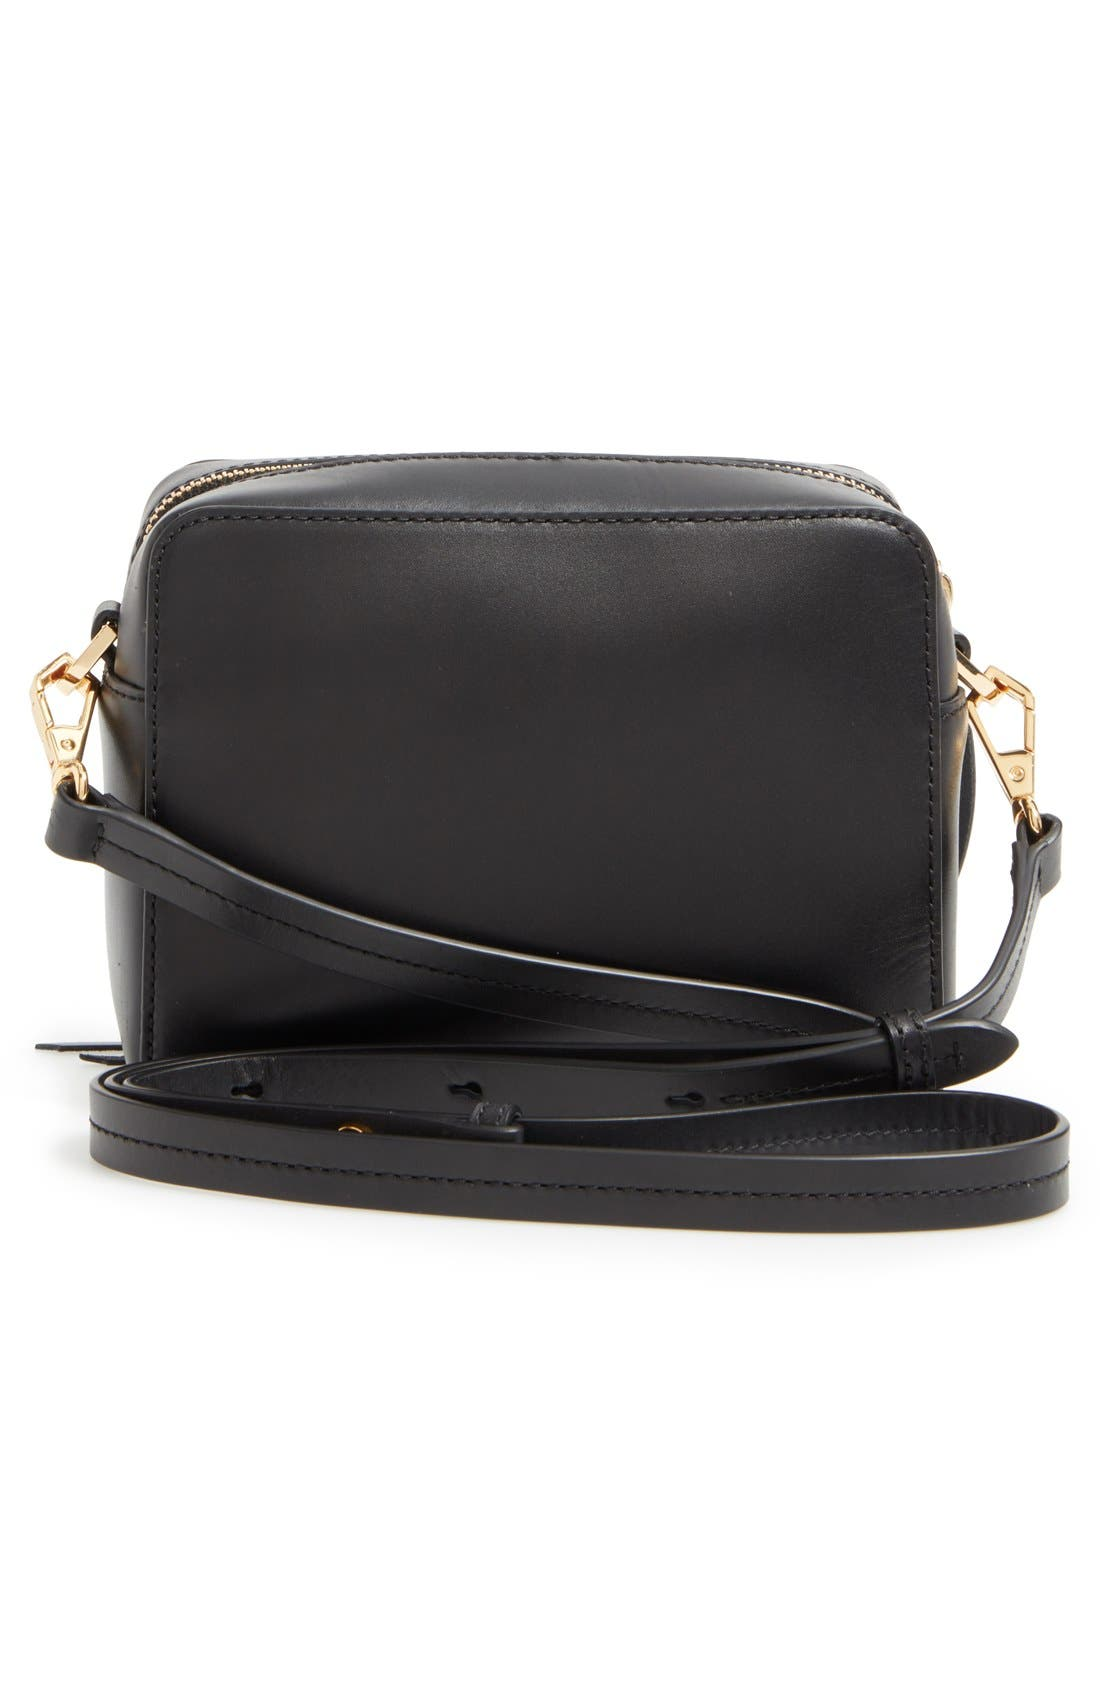 'Mini Sofia' Crossbody Bag,                             Alternate thumbnail 3, color,                             001